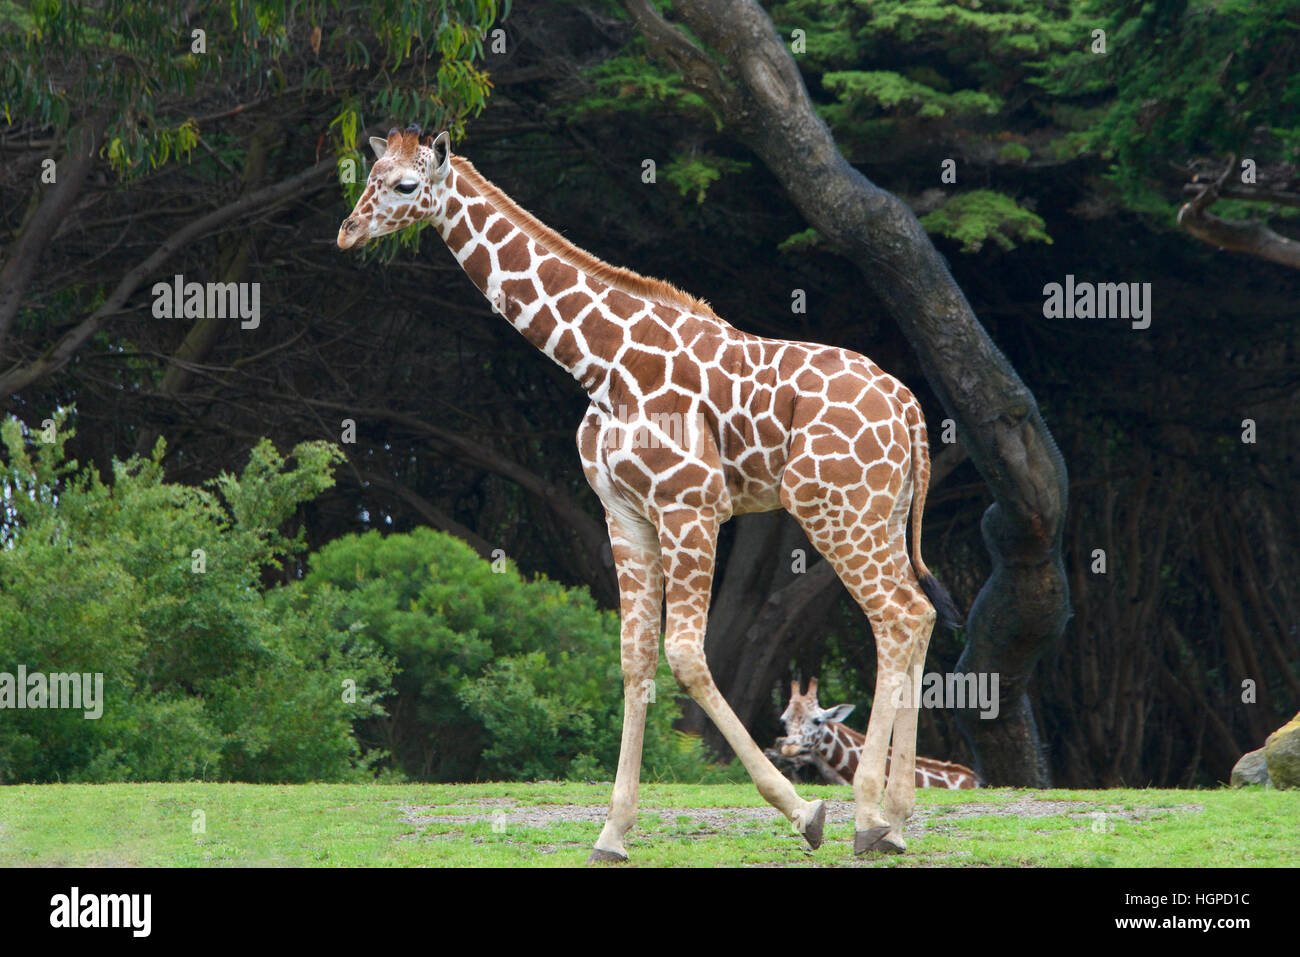 giraffe walking on grass with bushes and tall trees in background, another giraffe in the distance seen between Stock Photo